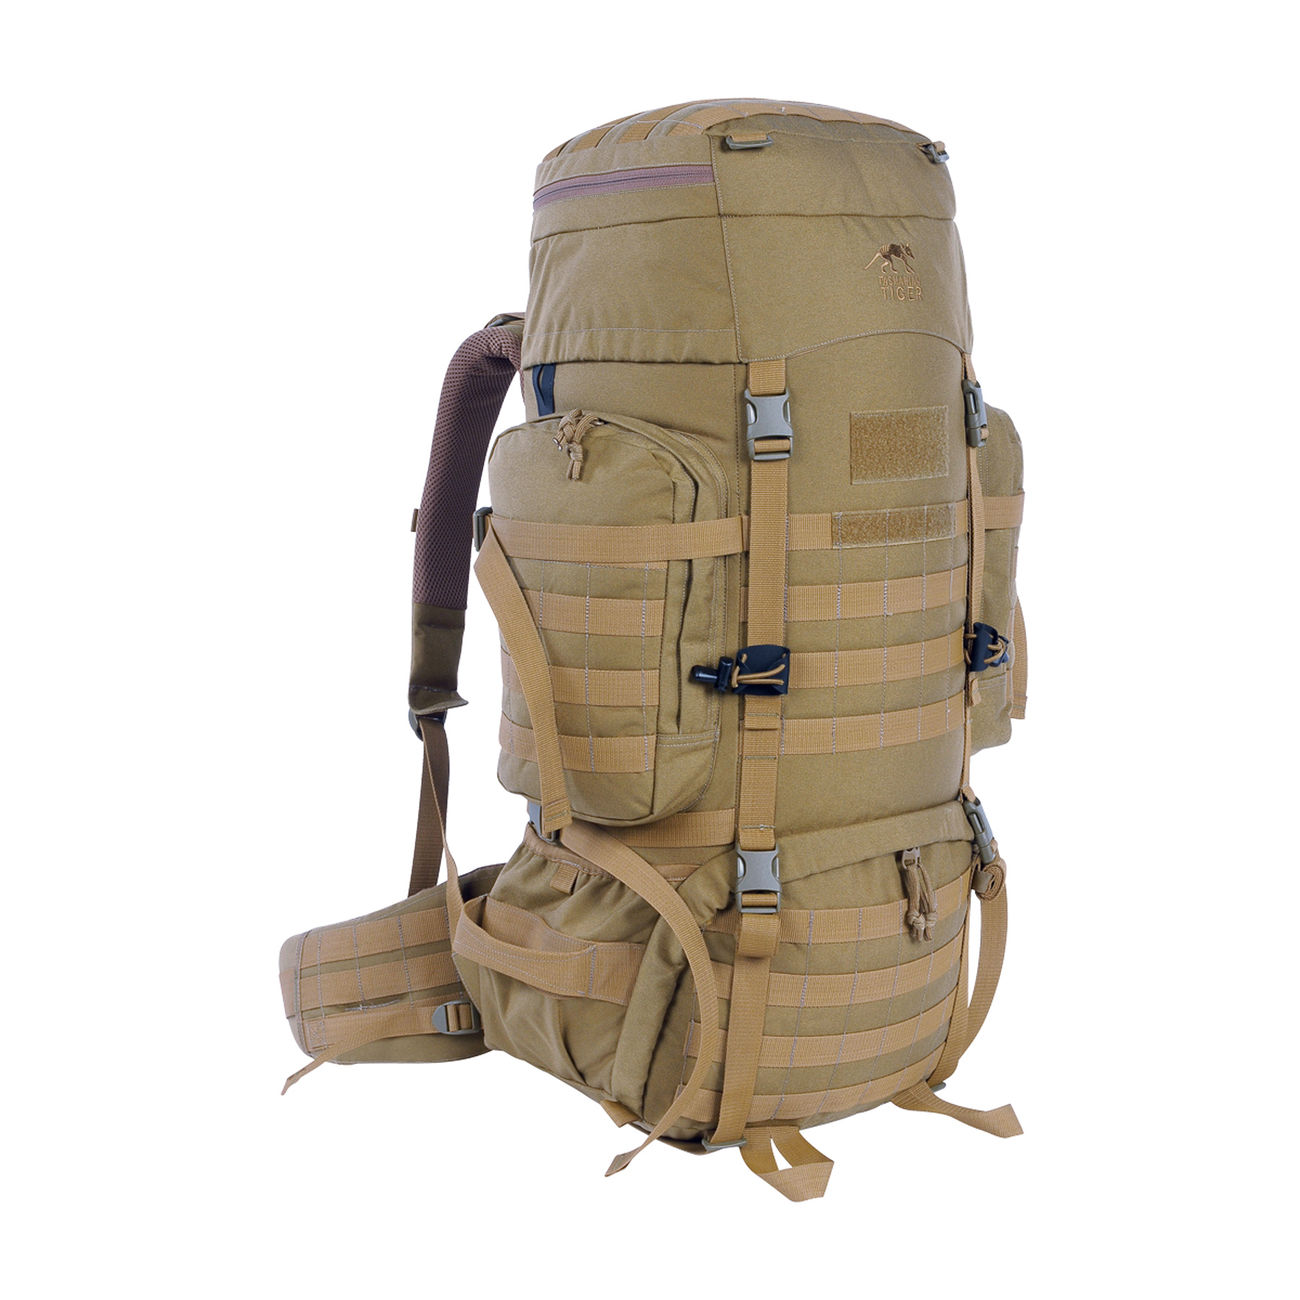 TT Rucksack Raid Pack MK III coyote brown 0